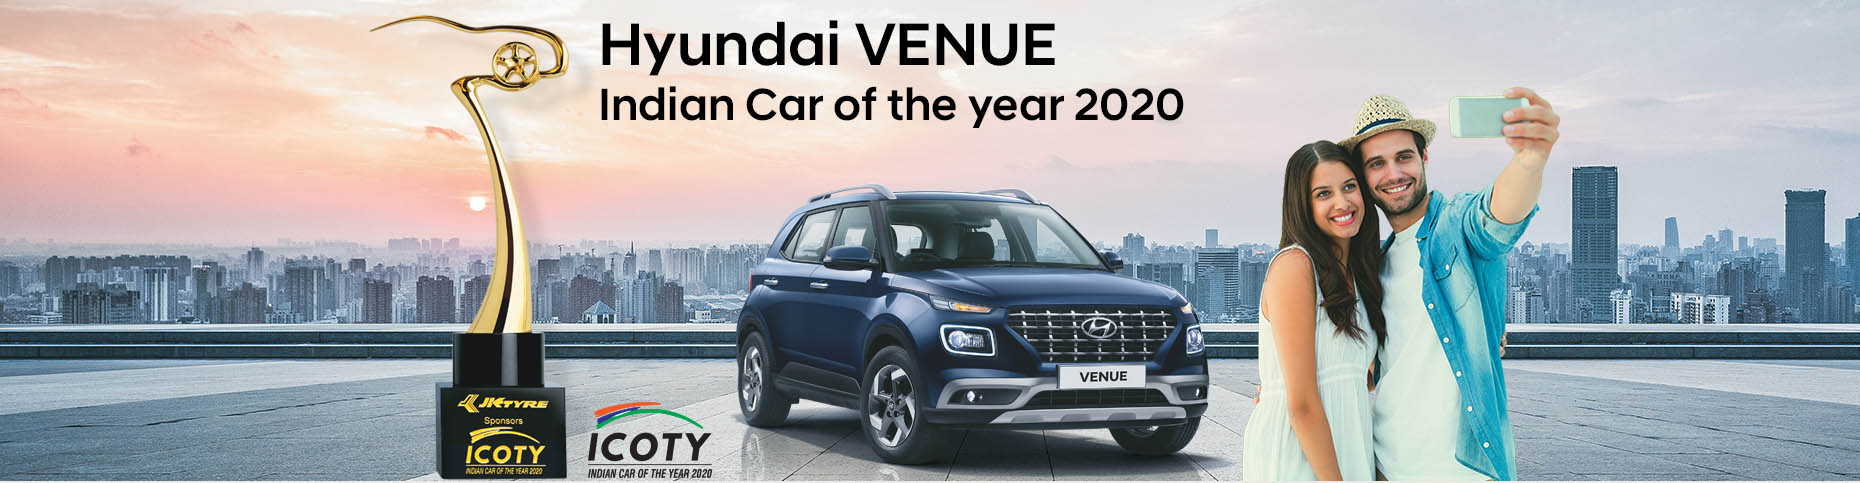 Hyundai Venue Achieves 100,000 Units Sales Milestone in India 2